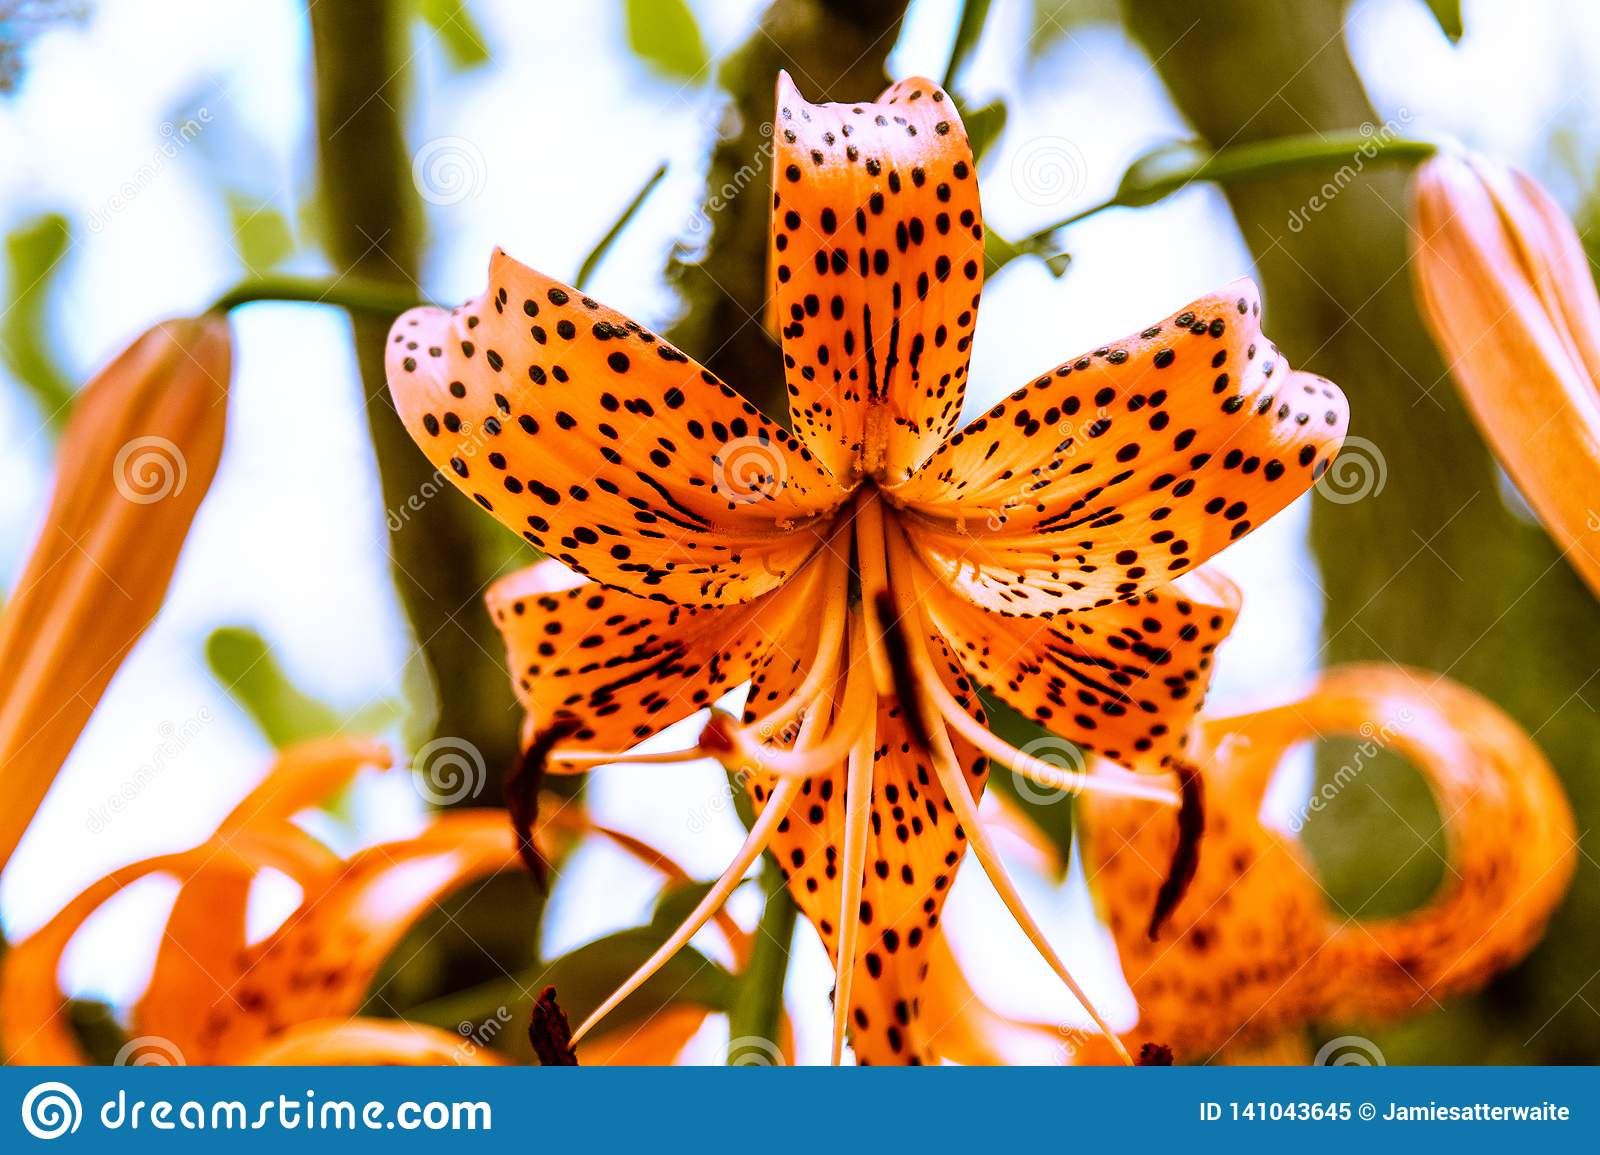 a54da28d01303 Tiger Lilly on a Bright Sunny Day featuring vibrant orange colors with  black spots.